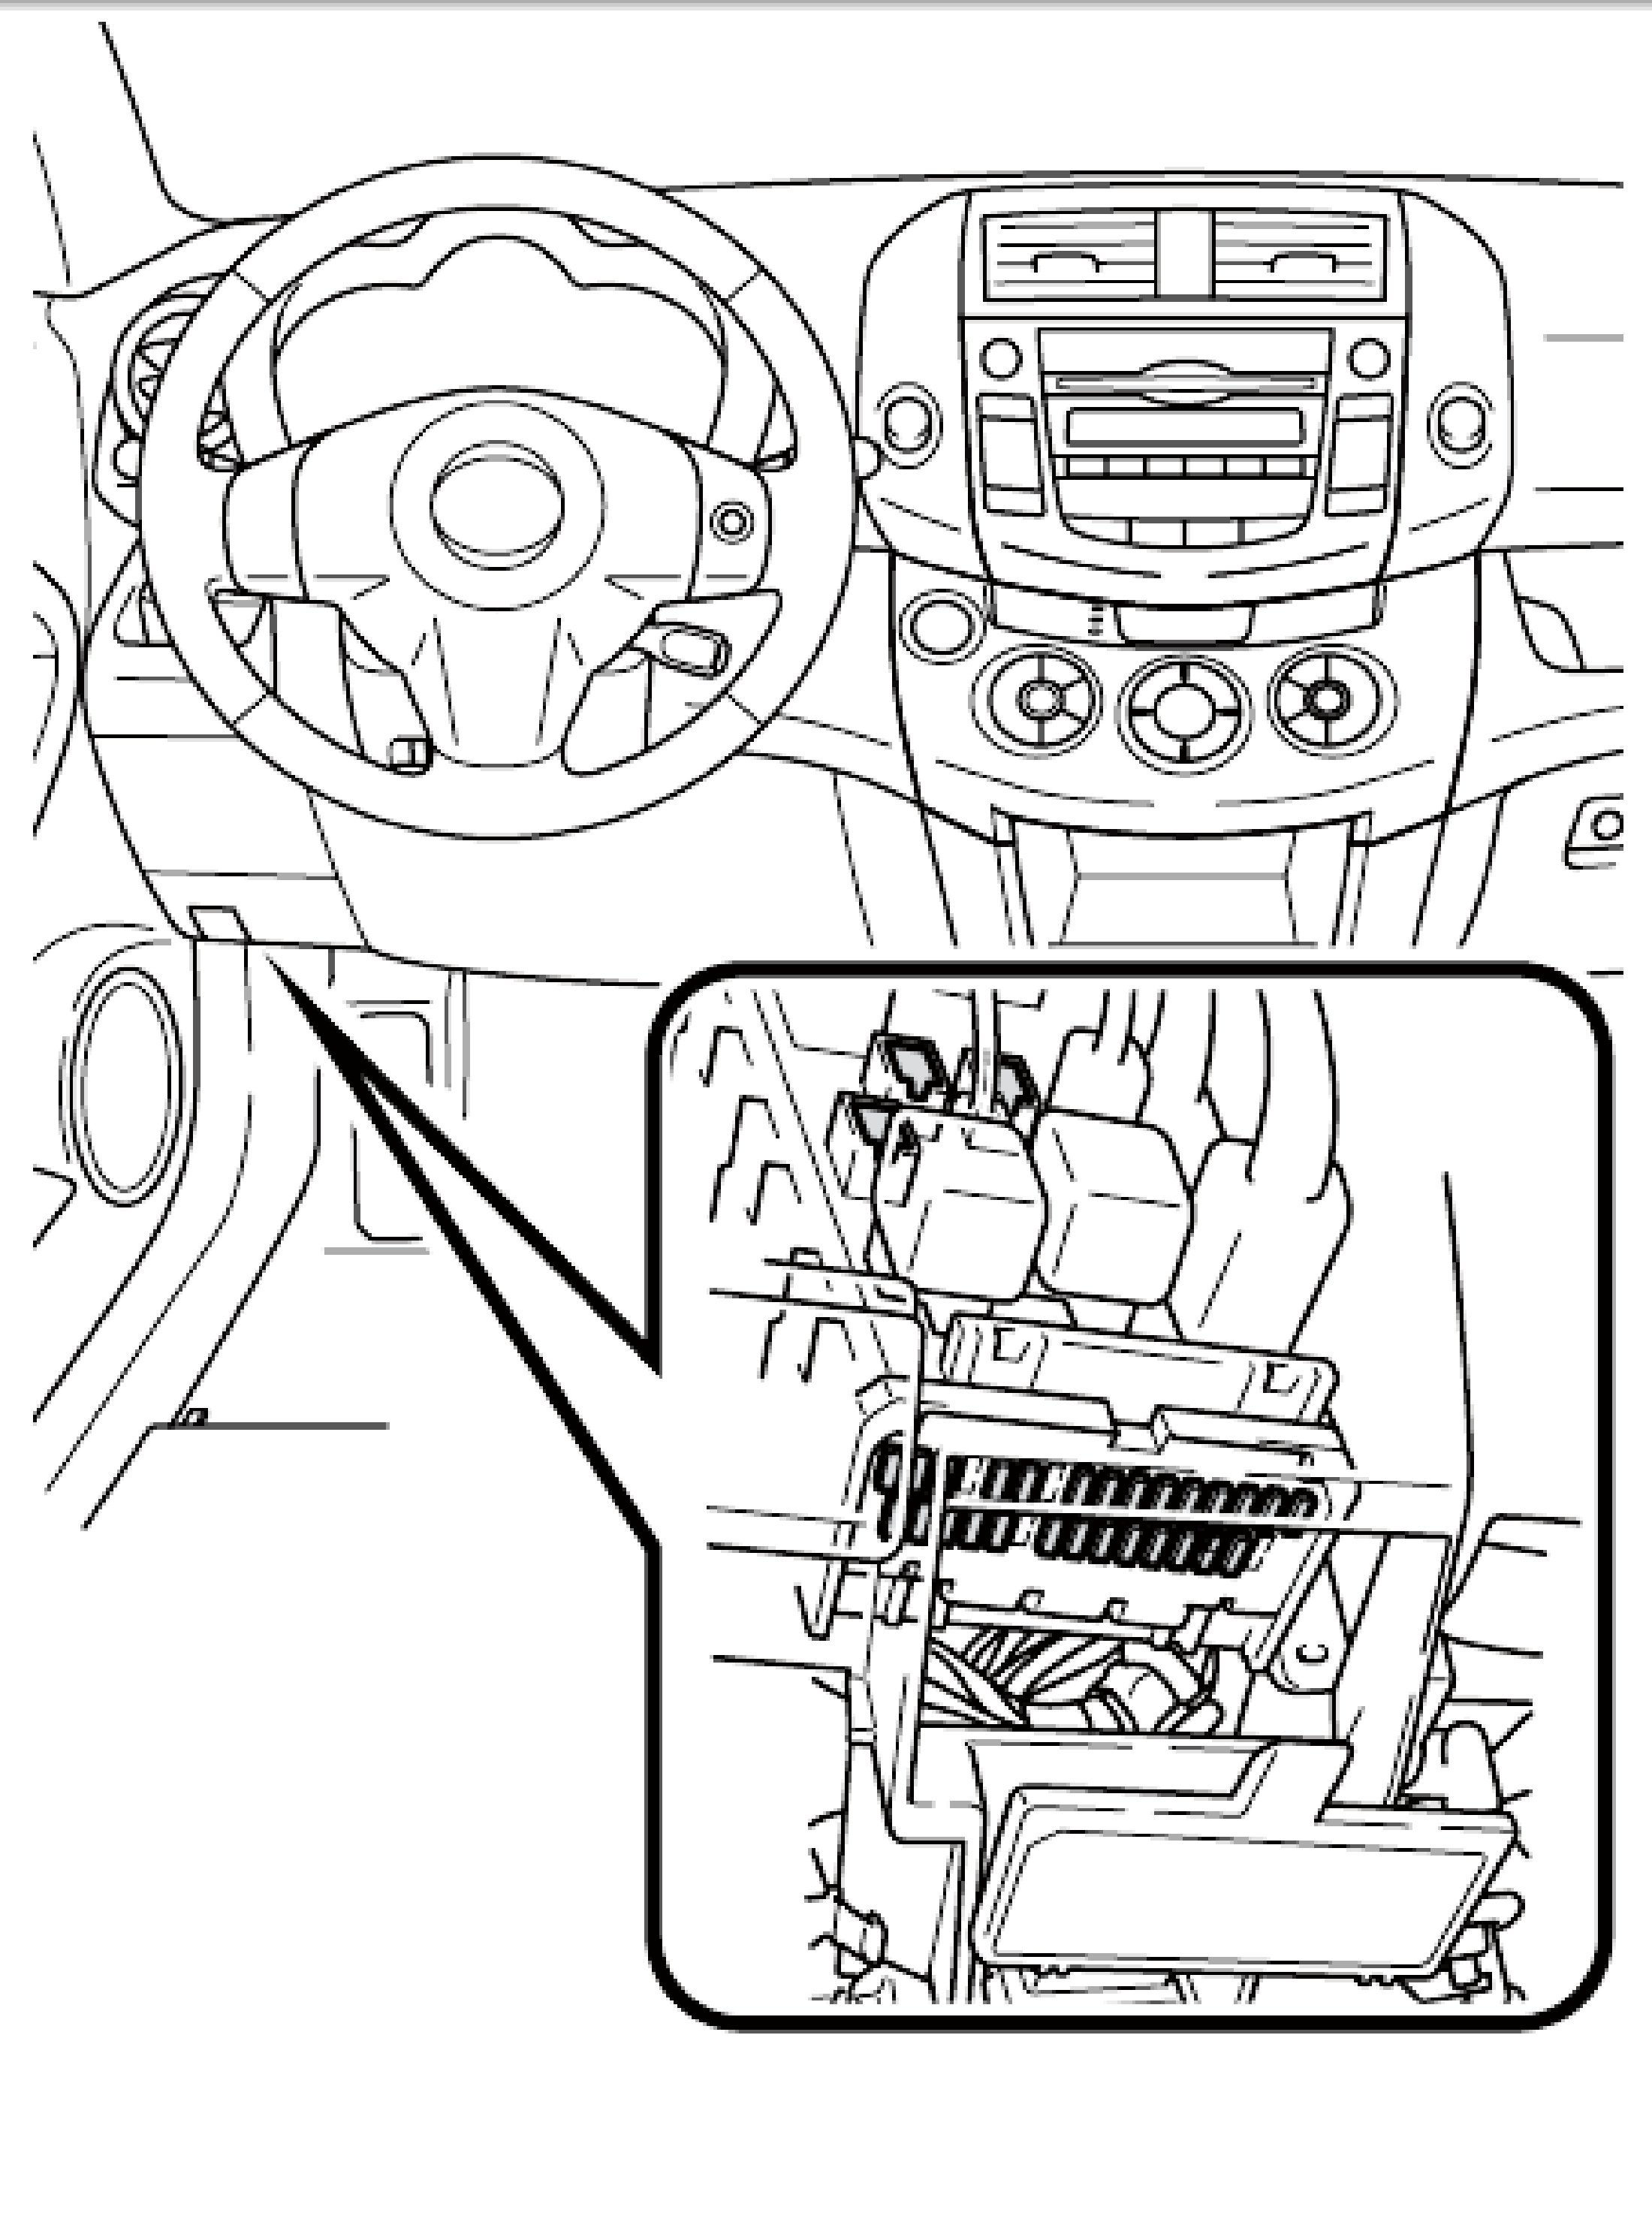 2001 Toyota Avalon Fuse Box : 27 Wiring Diagram Images